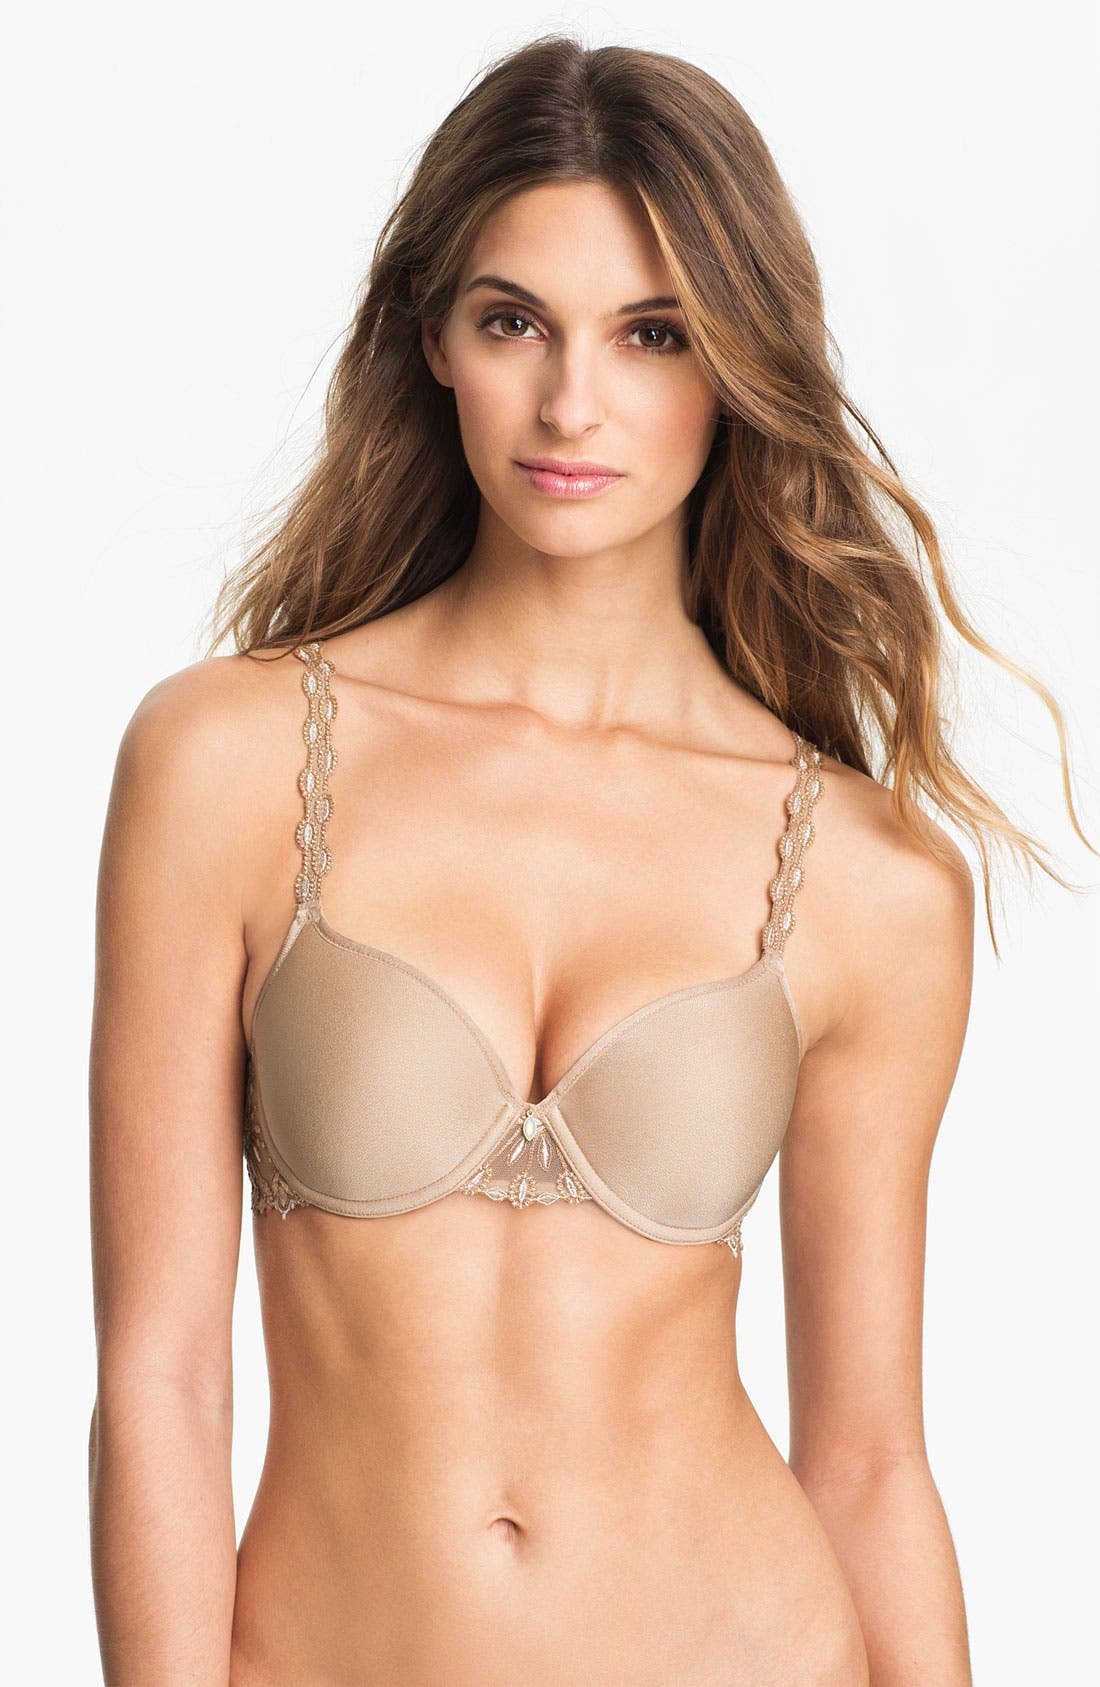 Alternate Image 1 Selected - Chantelle Intimates 'Vendôme' Convertible Underwire T-Shirt Bra